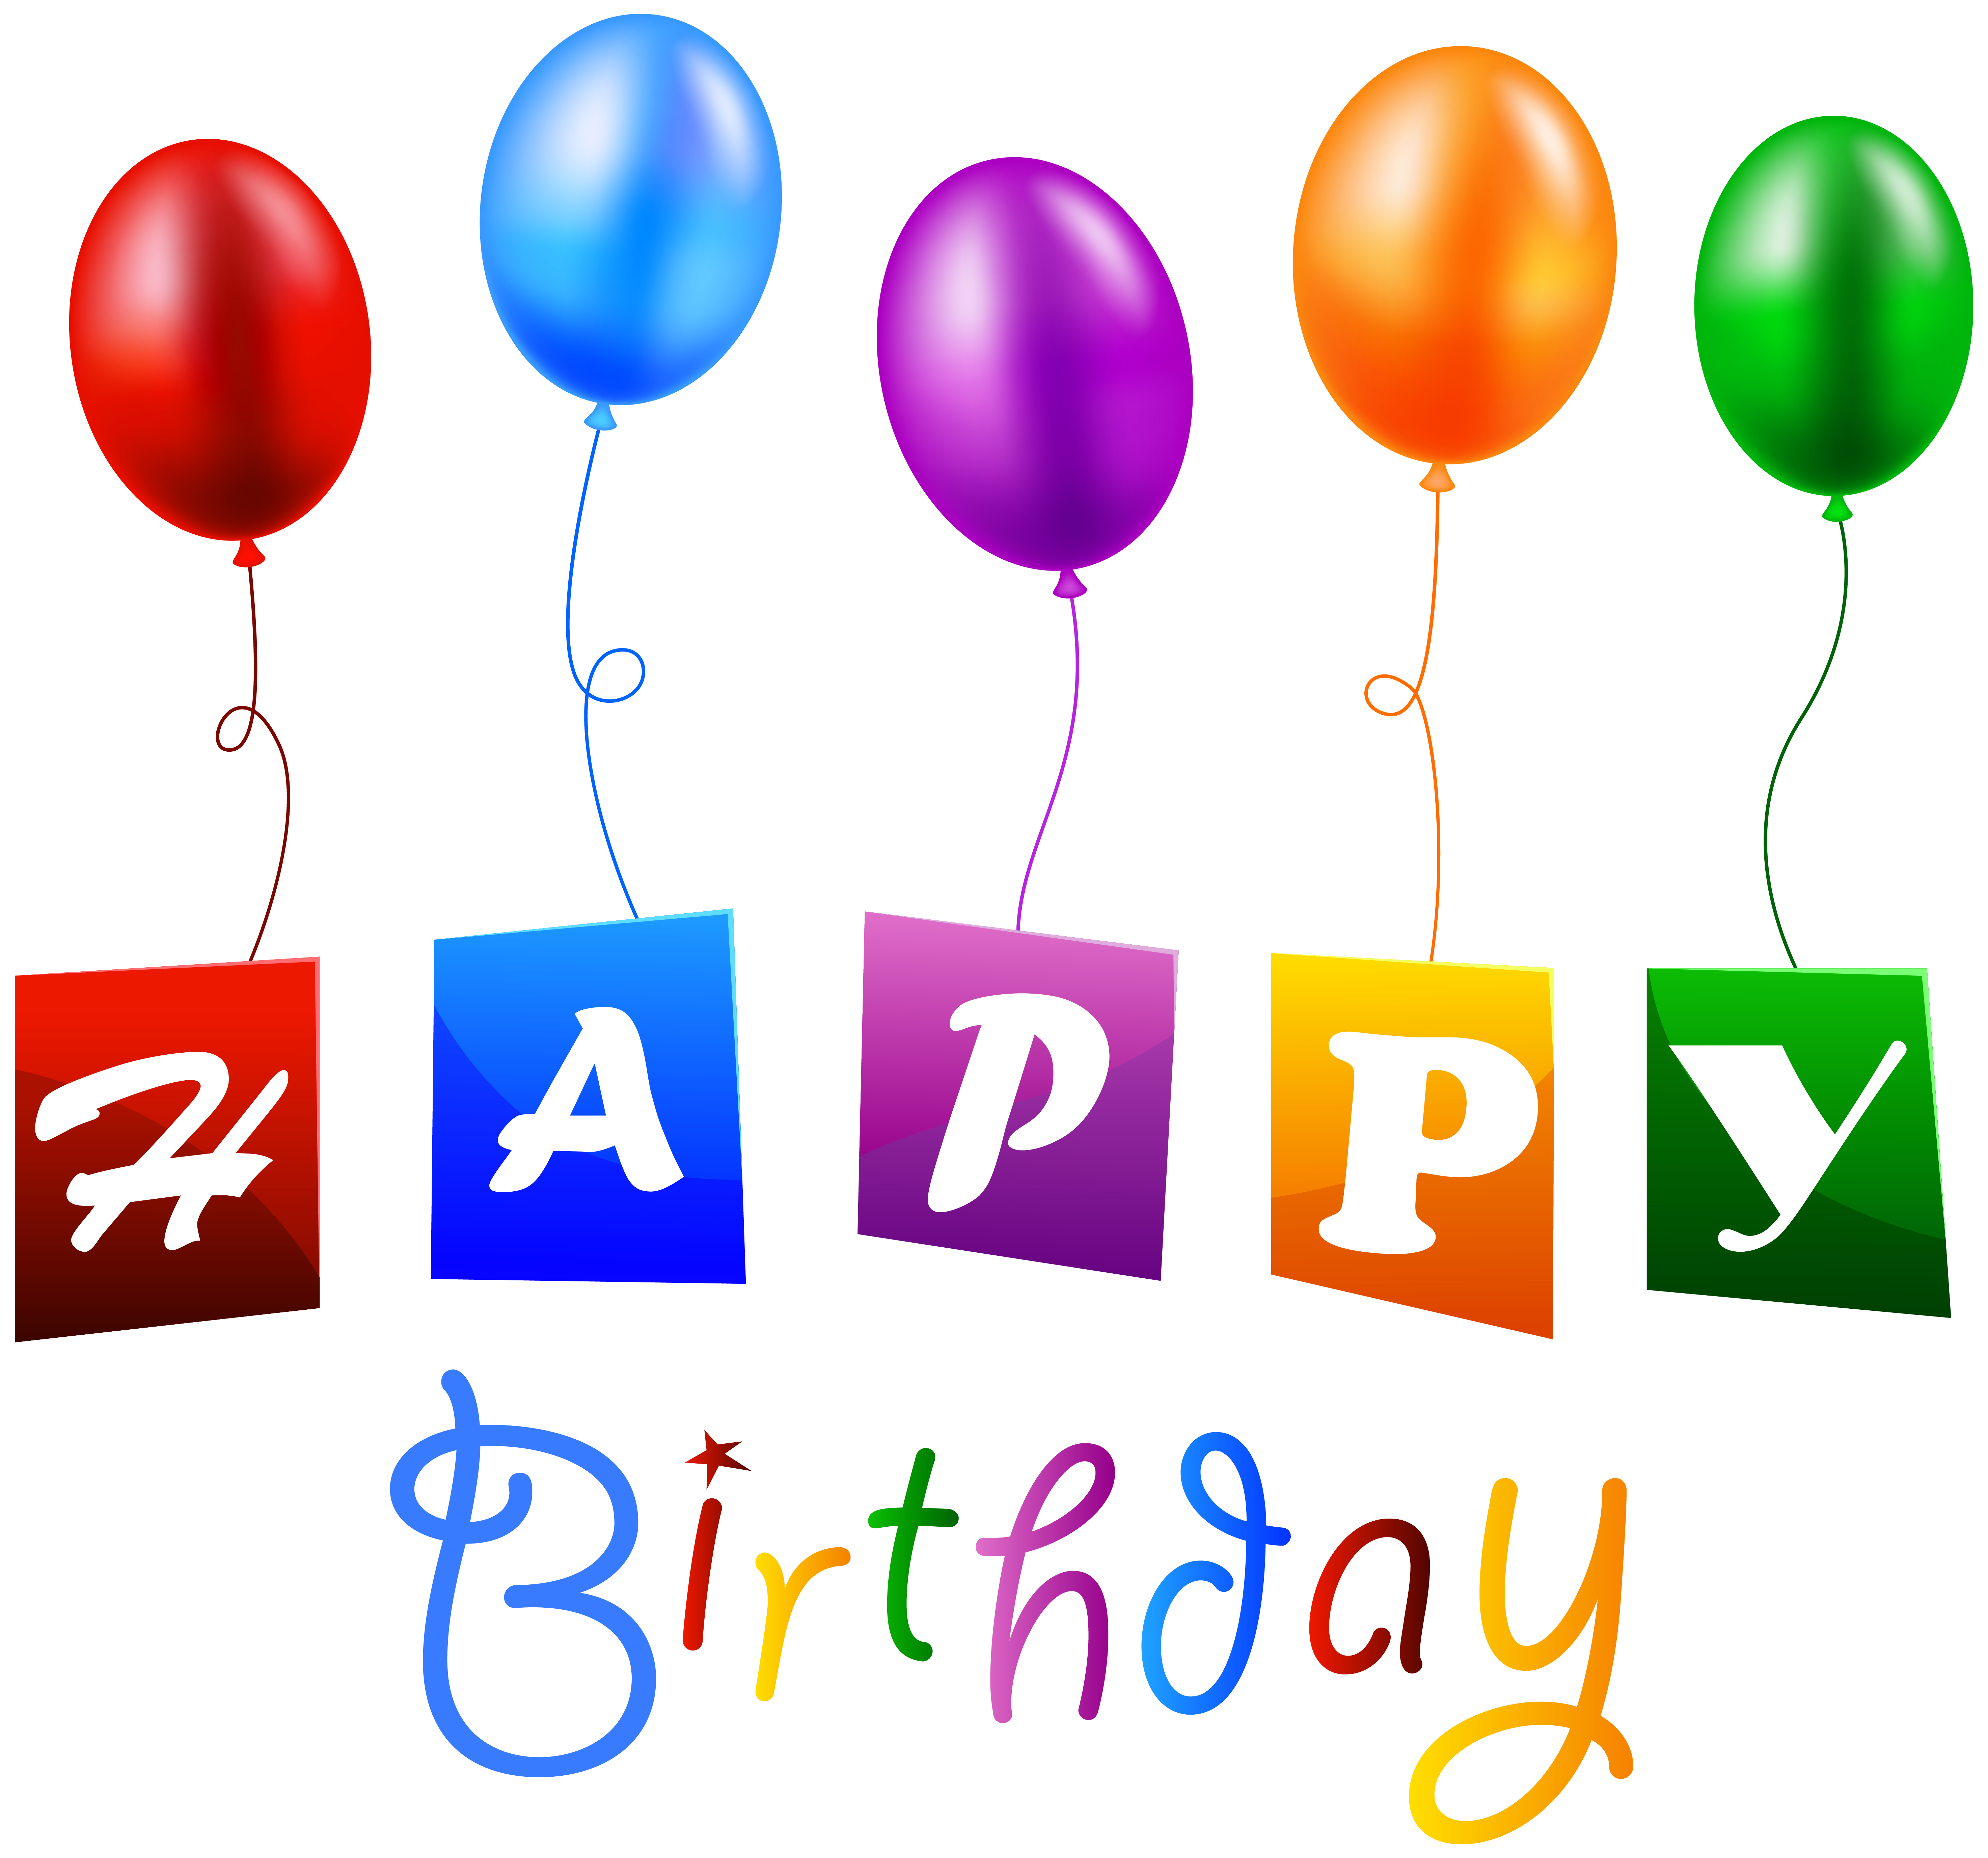 Happy birthday with balloons. Clipart balloon spring